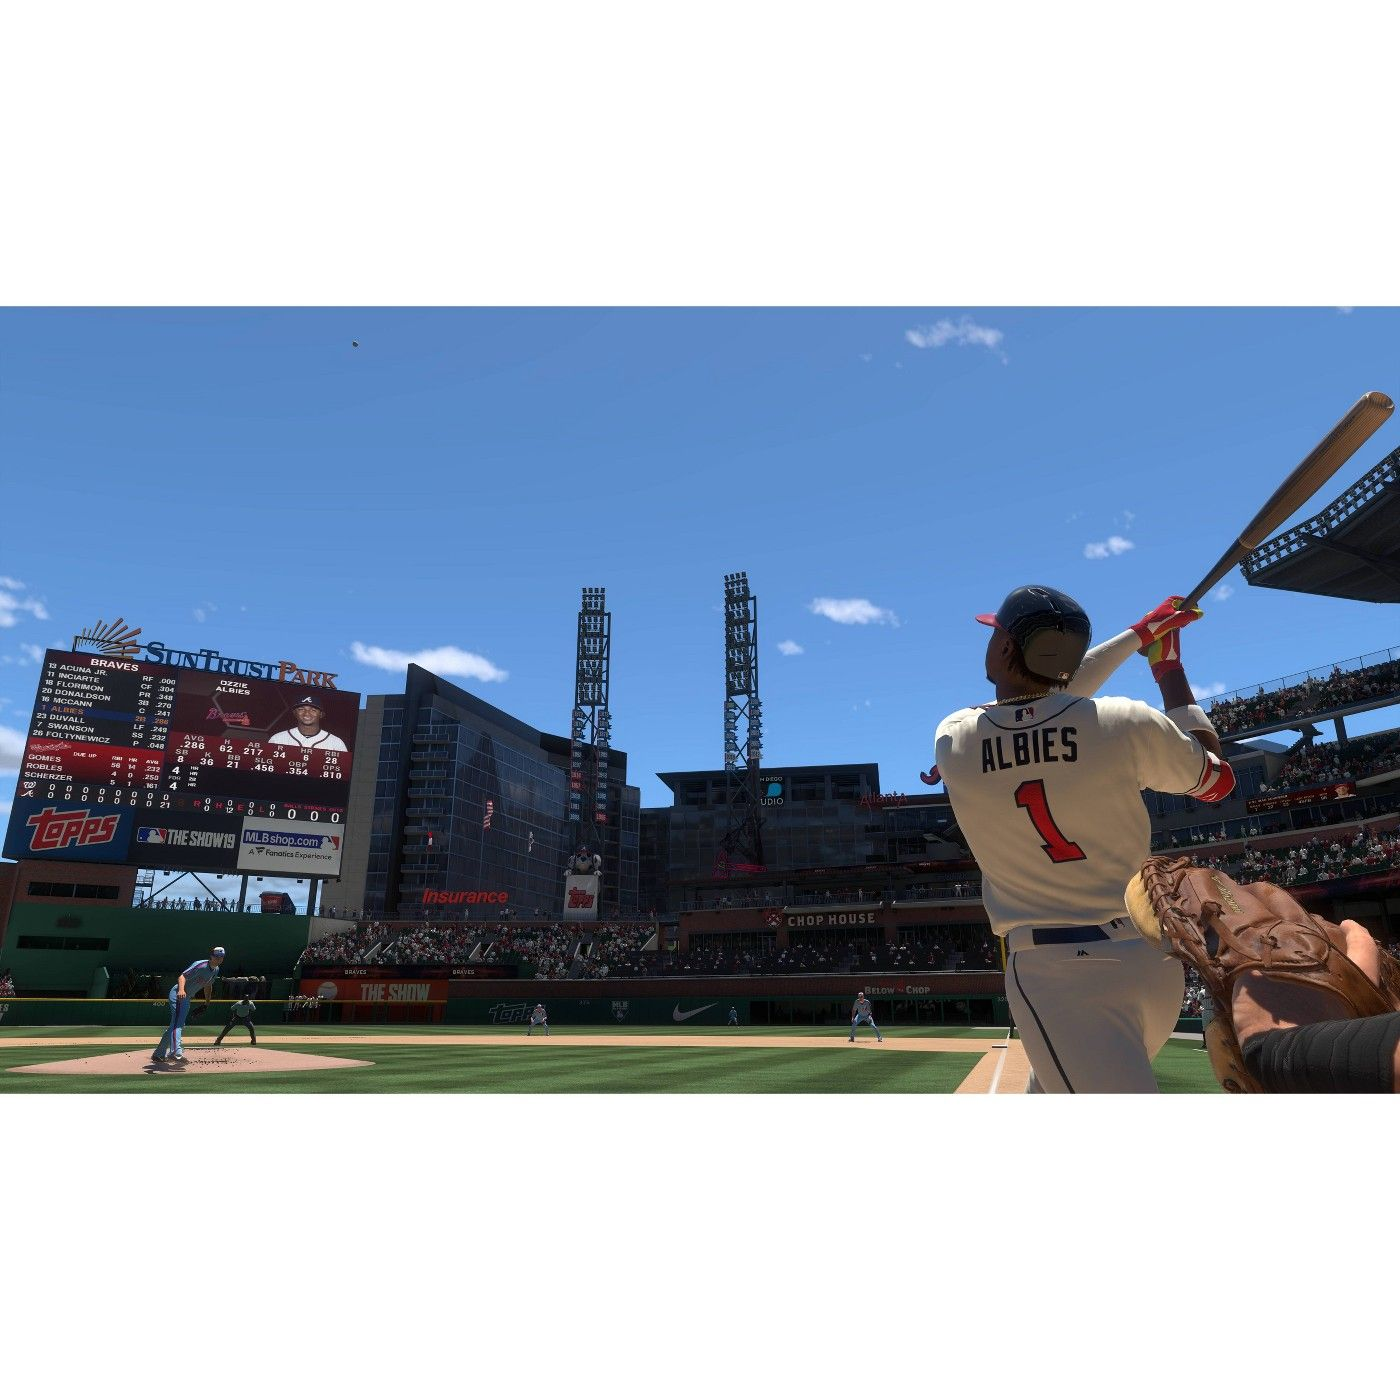 Mlb The Show 19 Playstation 4 Affiliate Show Ad Mlb Playstation Mlb The Show Mlb Playstation